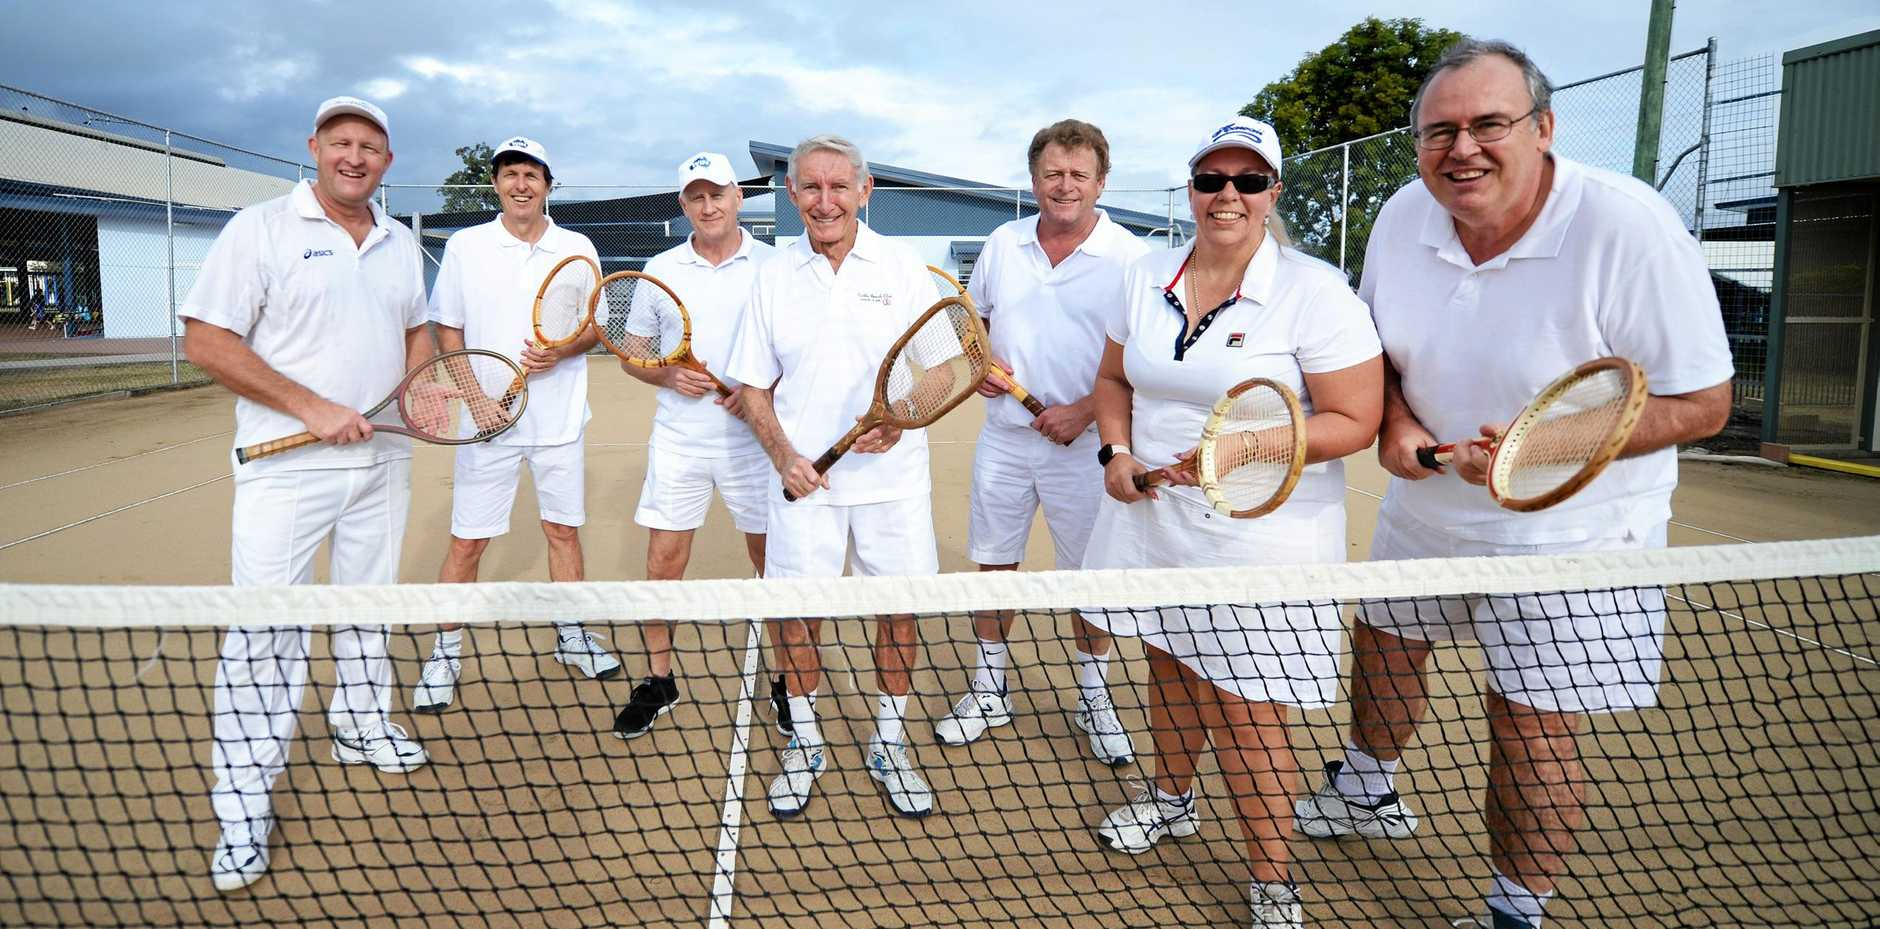 FLASHBACK: Tennis players Gordon Acutt, Warren Acutt, Lance Baxter, Des Campbell, Peter Lynch, Julie Collins and Peter Lawrence will don all white and play with wooden racquets in the annual Olive McBryde Challenge on Sunday.